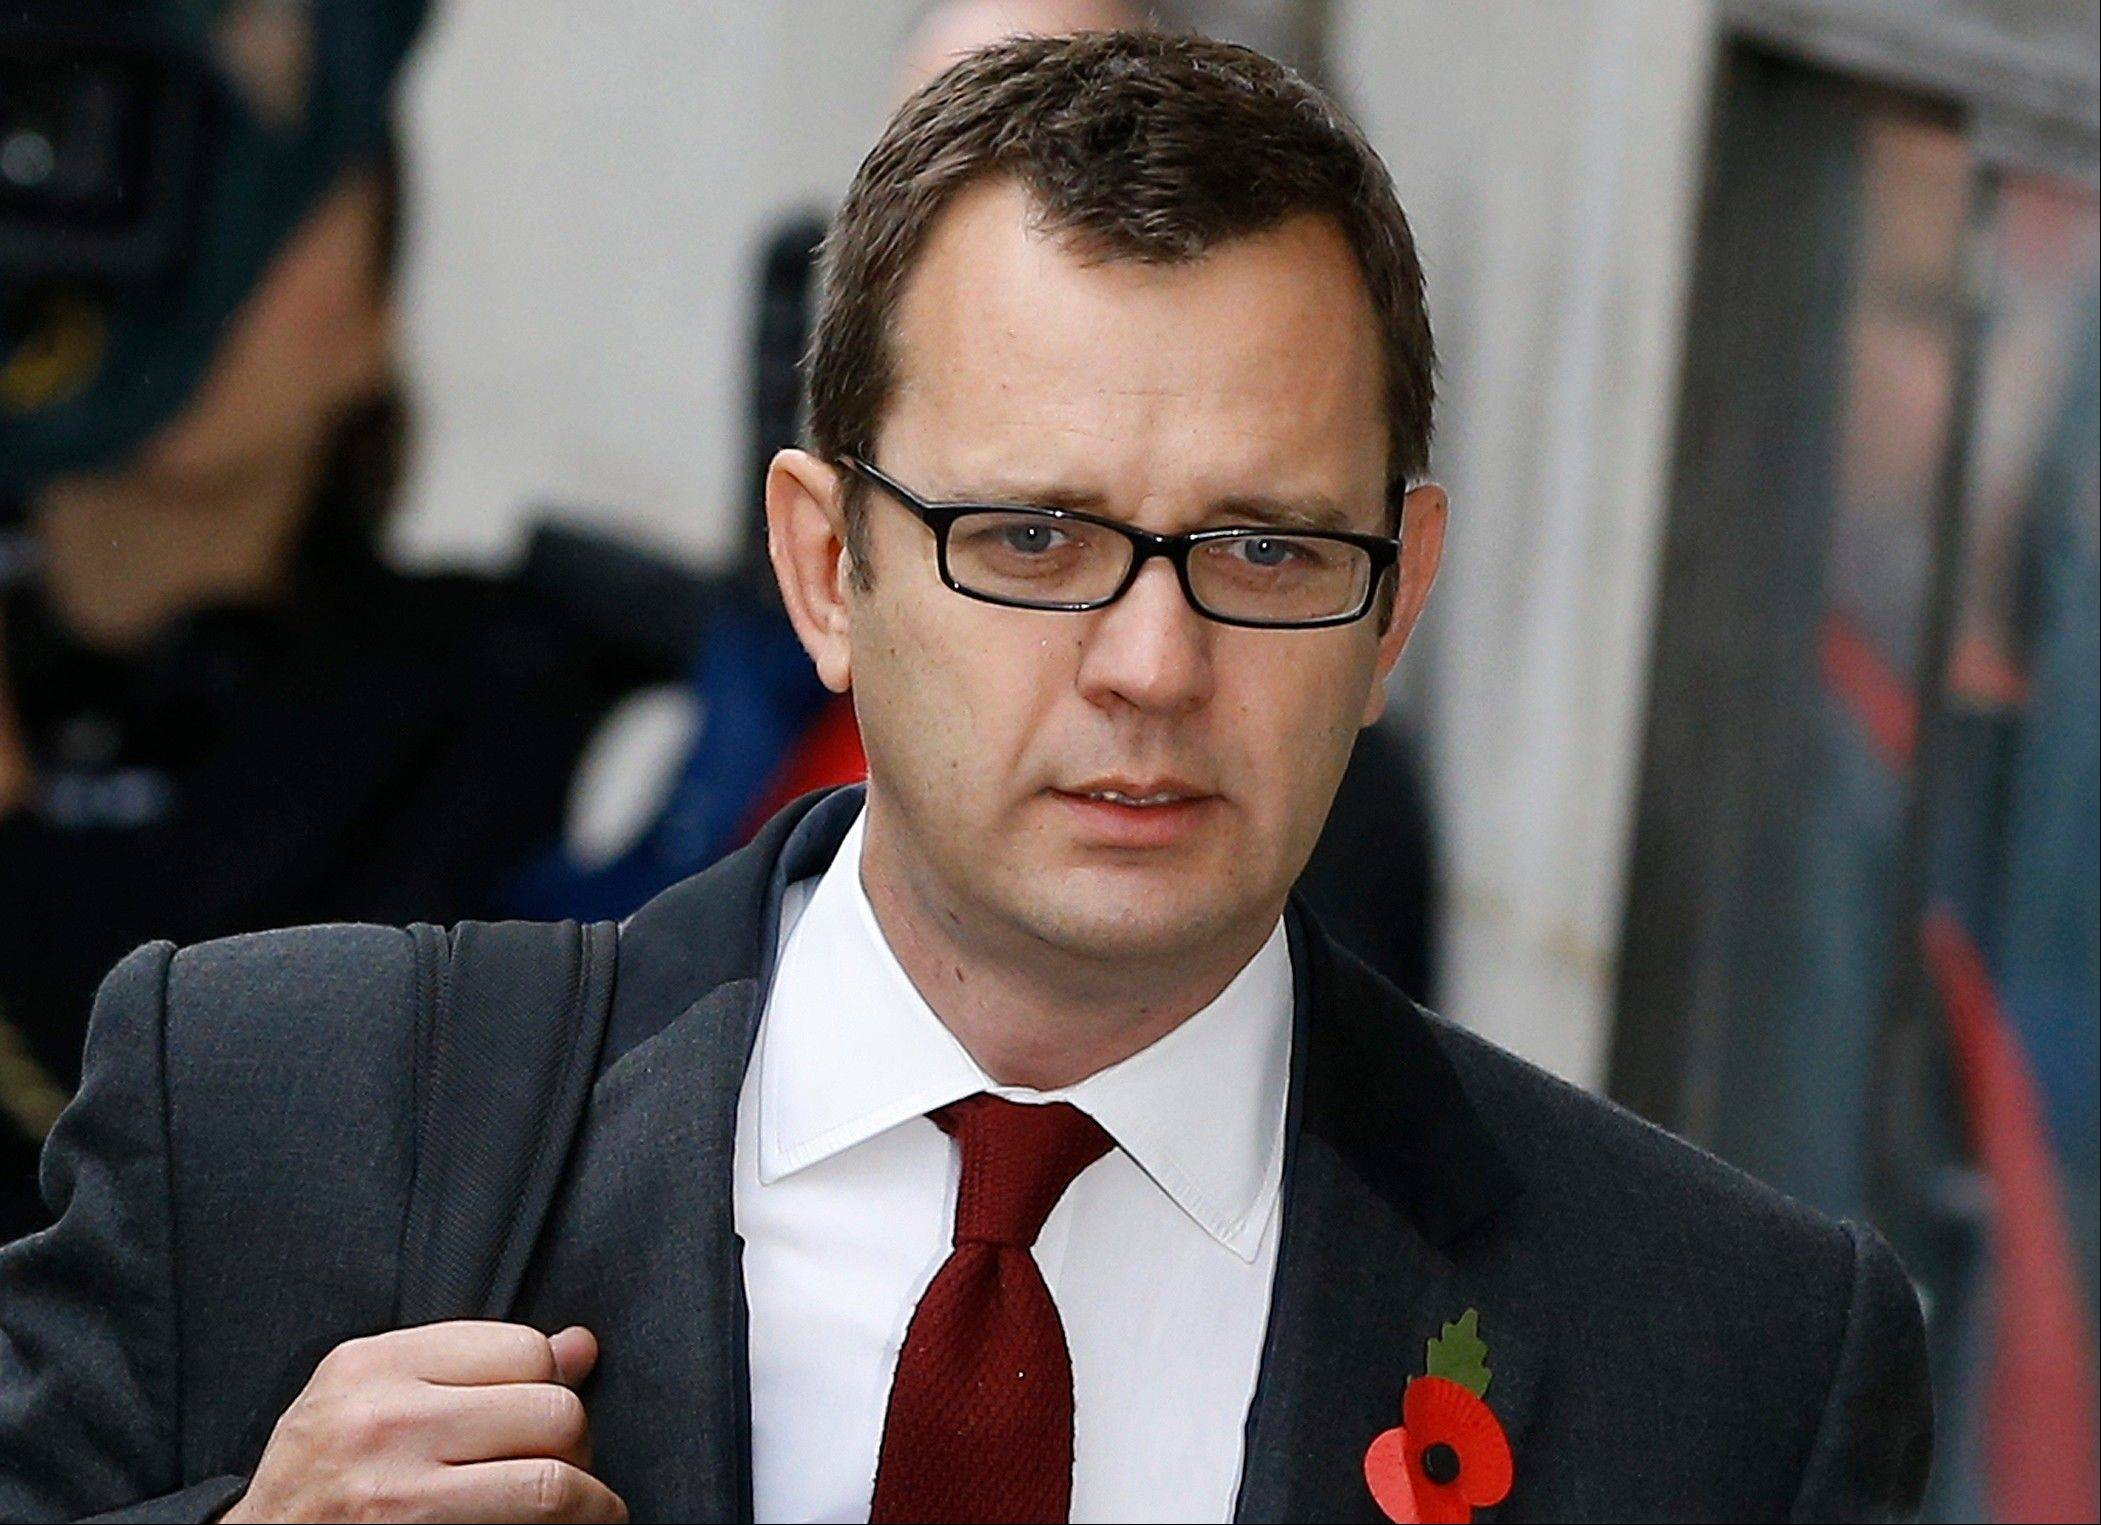 Andy Coulson arrives at The Old Bailey law court in London, Thursday, Oct. 31, 2013. Former News of the World national newspaper editors Rebekah Brooks and Andy Coulson went on trial Monday on charges relating to the hacking of phones and bribing officials while they were employed at the now closed tabloid paper.